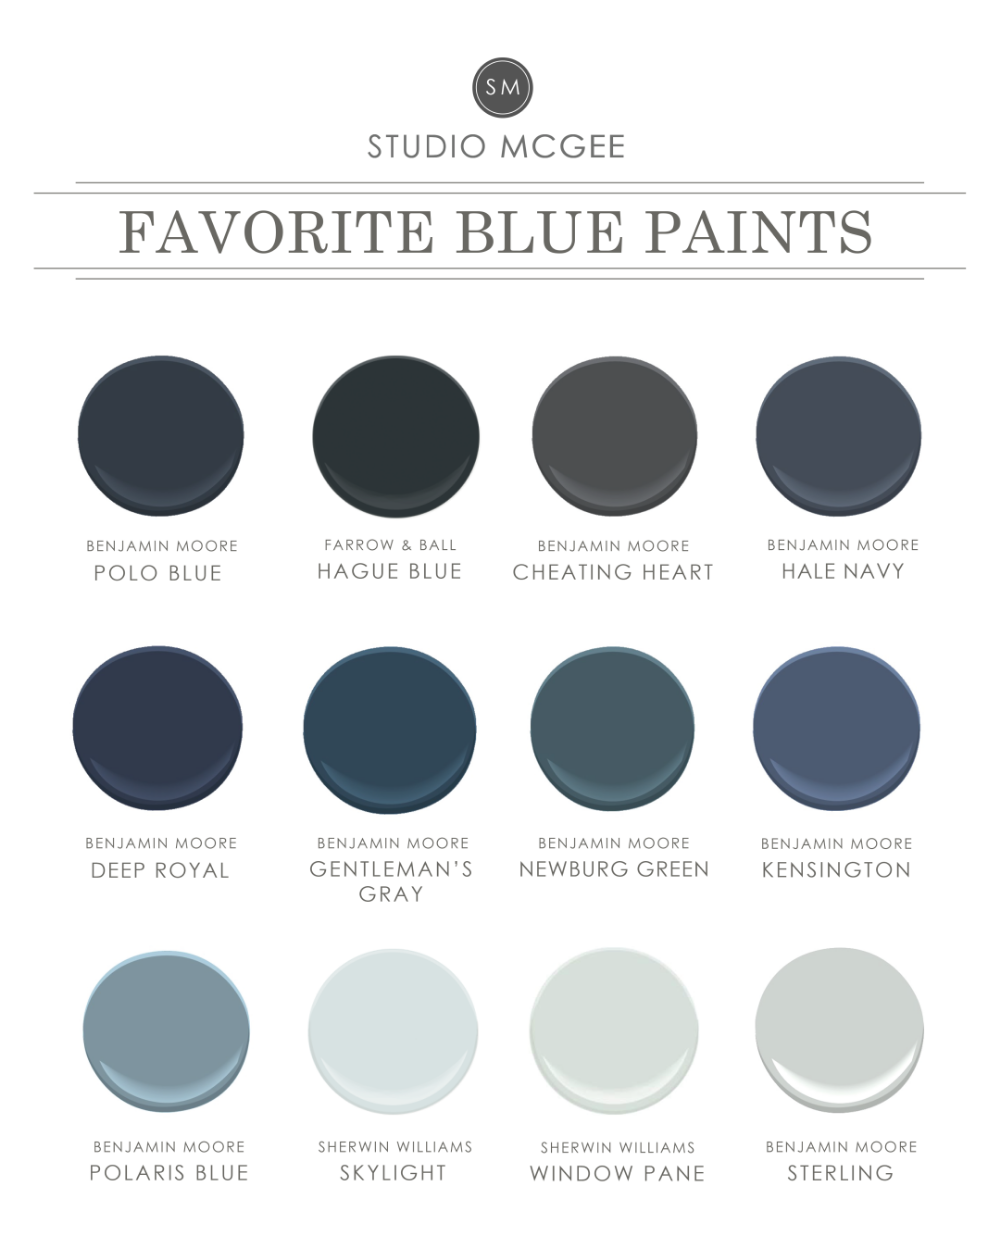 Shop 2062-10 Polo Blue | Benjamin Moore, Colours | | Farrow & Ball, Cheating Heart 1617 | Benjamin Moore, Hale Navy HC-154 | Benjamin Moore, 2061-10 Deep Royal | Benjamin Moore, 2062-20 Gentleman's Gray | Benjamin Moore, HC-158 Newburg Green | Benjamin Moore, CC-780 Kensington Blue | Benjamin Moore, AC-24 Charlotte Slate | Benjamin Moore, Paint Colors | Free Shipping on Benjamin Moore Paint and Samples, Window Pane SW 6210 - White & Pastel Paint Color - Sherwin-Williams, 1591 Sterling | Benjamin #halenavybenjaminmoore